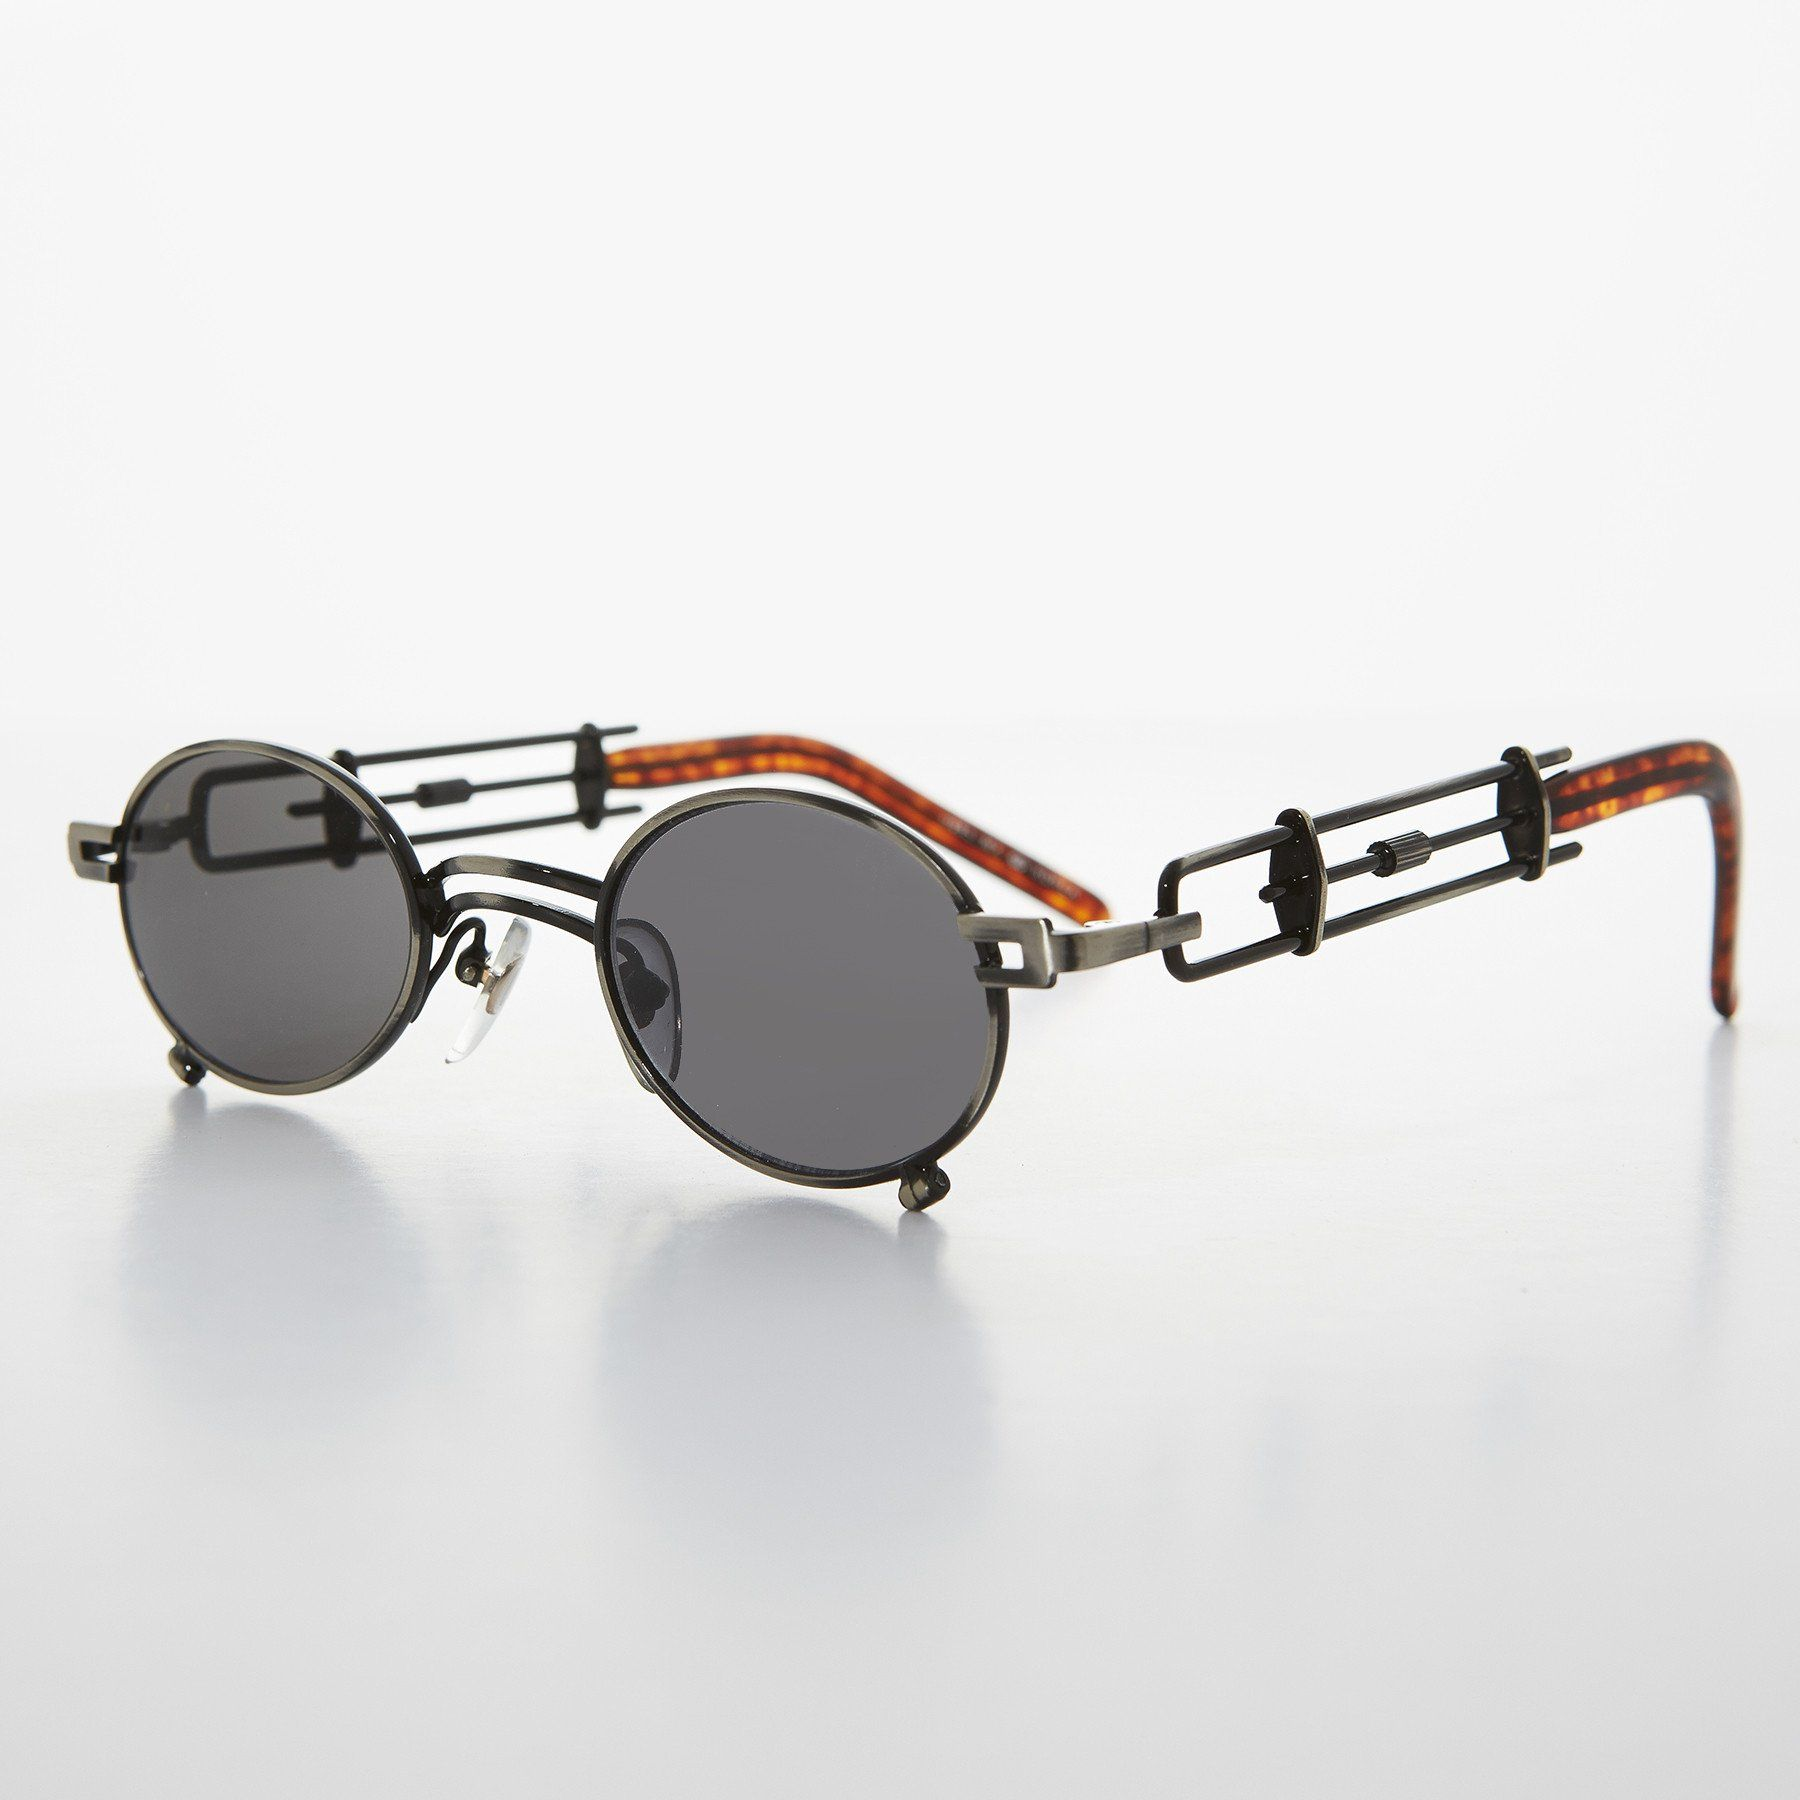 Mens NEW CLASSY VINTAGE RETRO Style SUN GLASSES Silver Frame Wood Wooden Temples